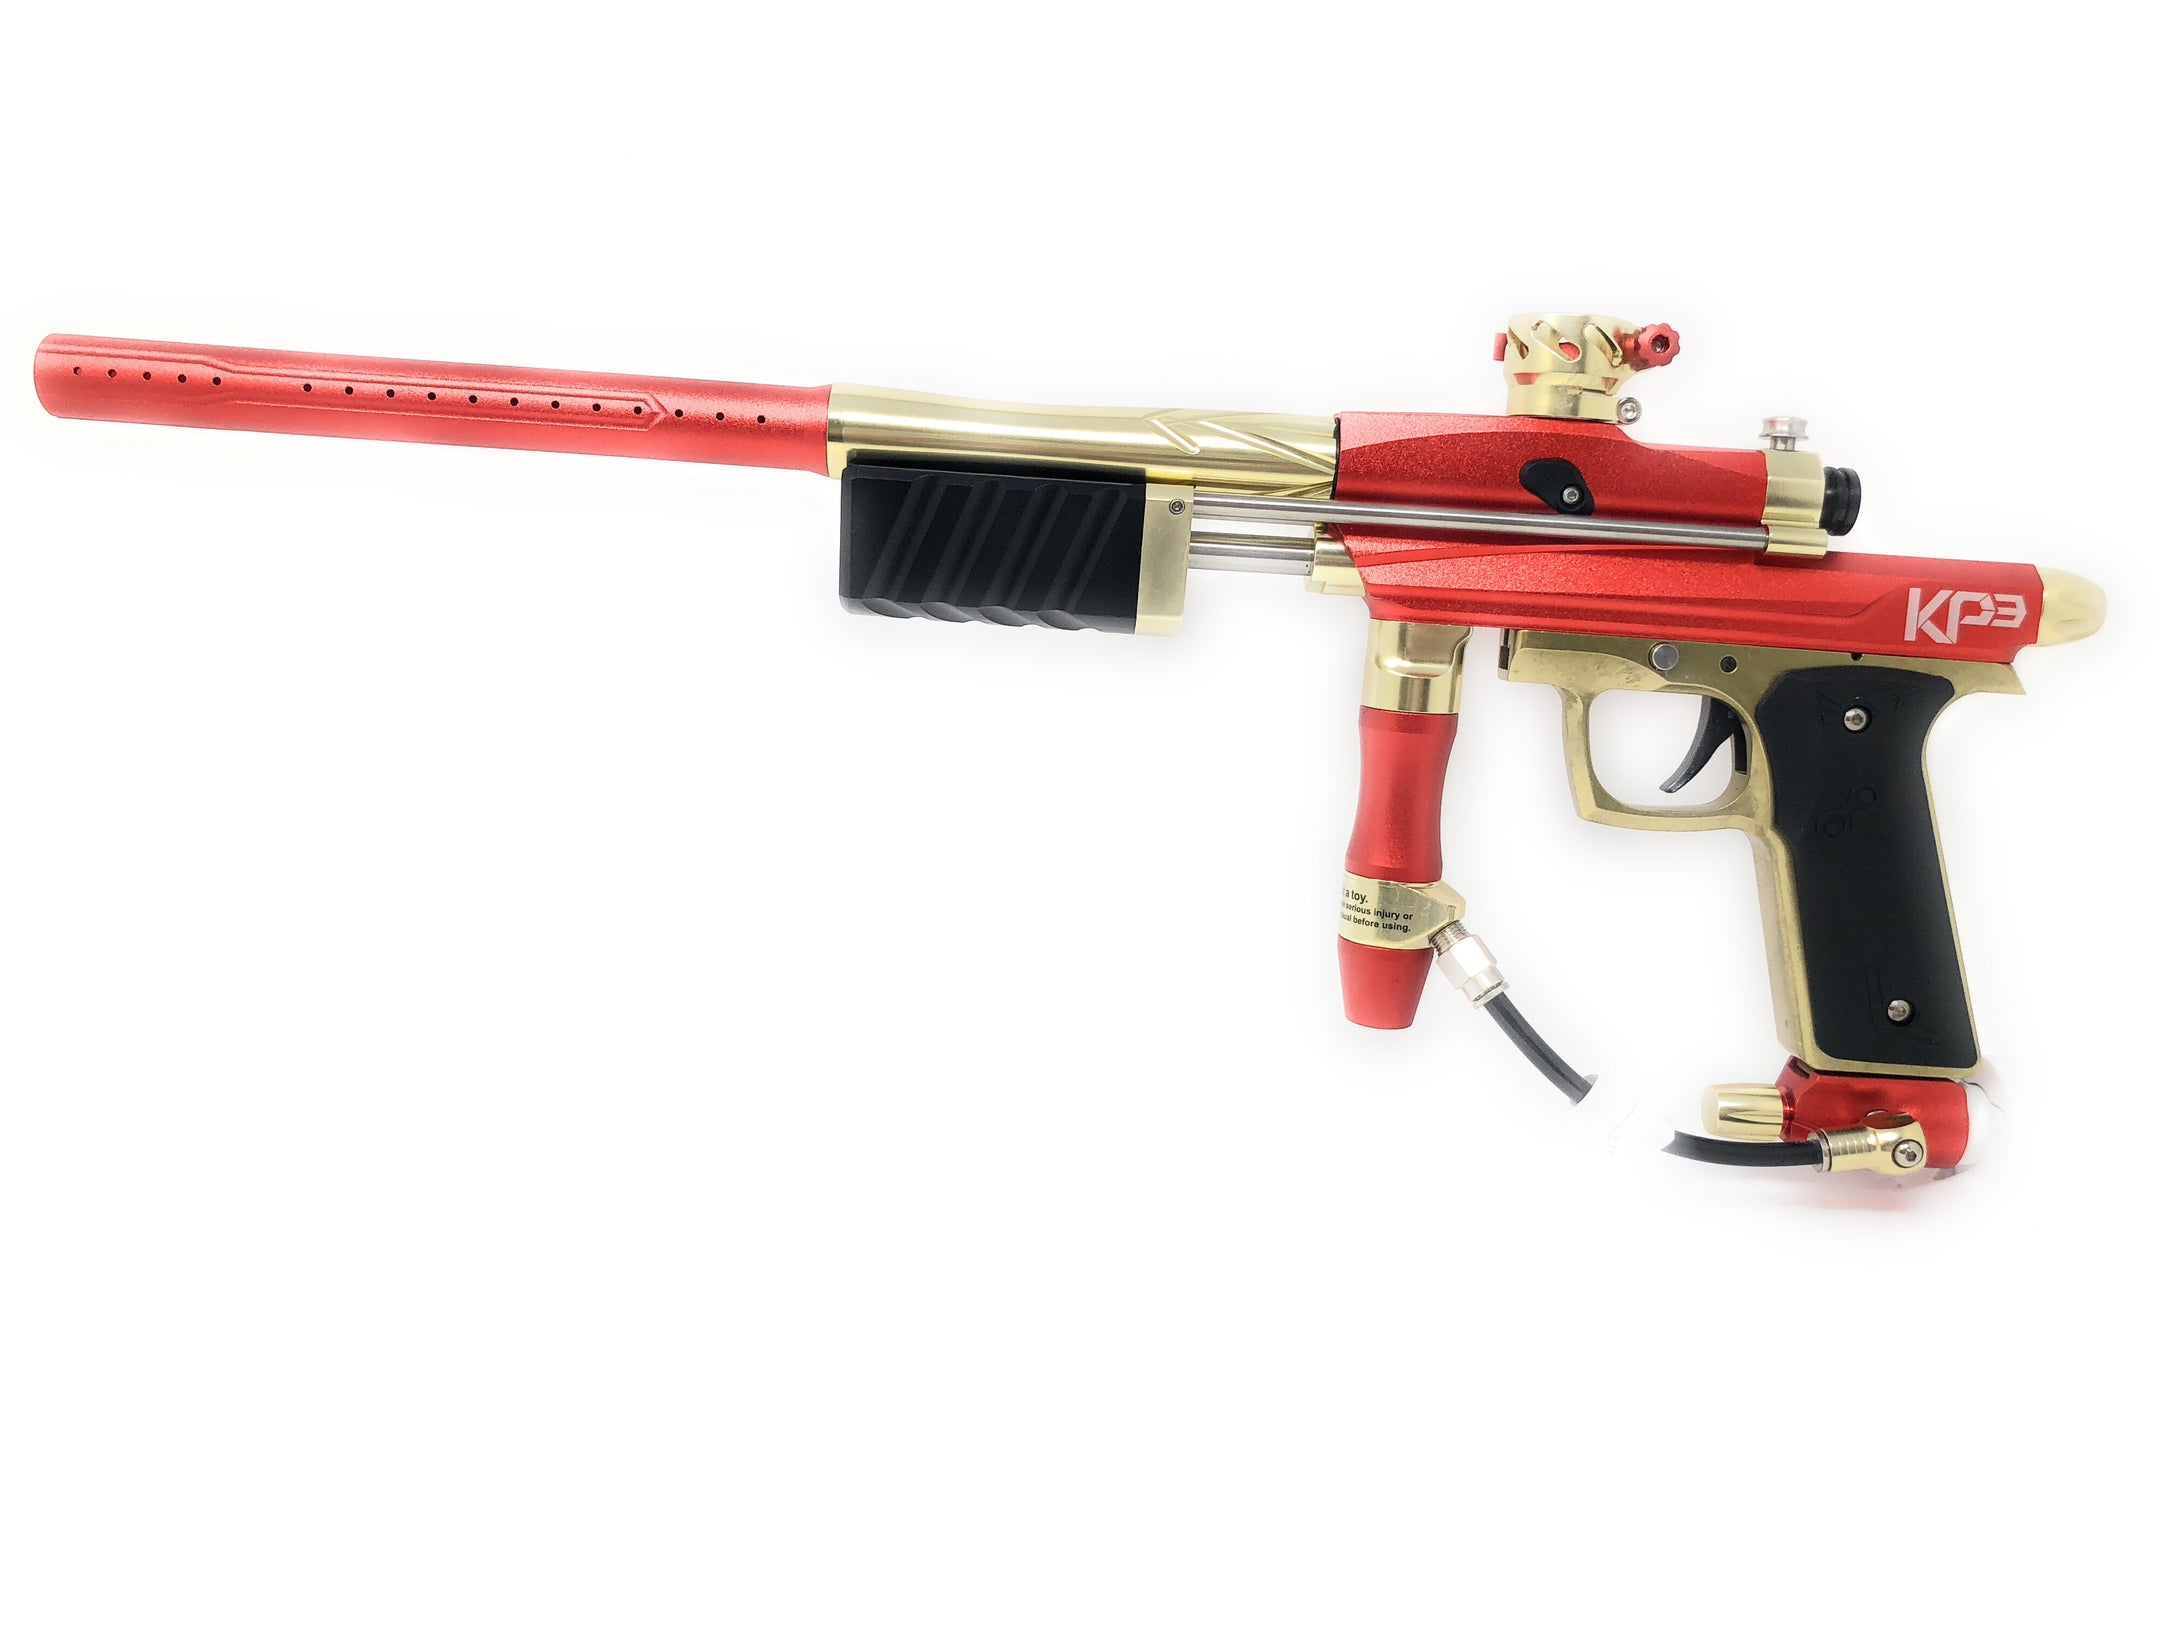 Photos of Azodin KP3 Pump Paintball Marker - Orange/Gold. Photo taken by drpaintball.com